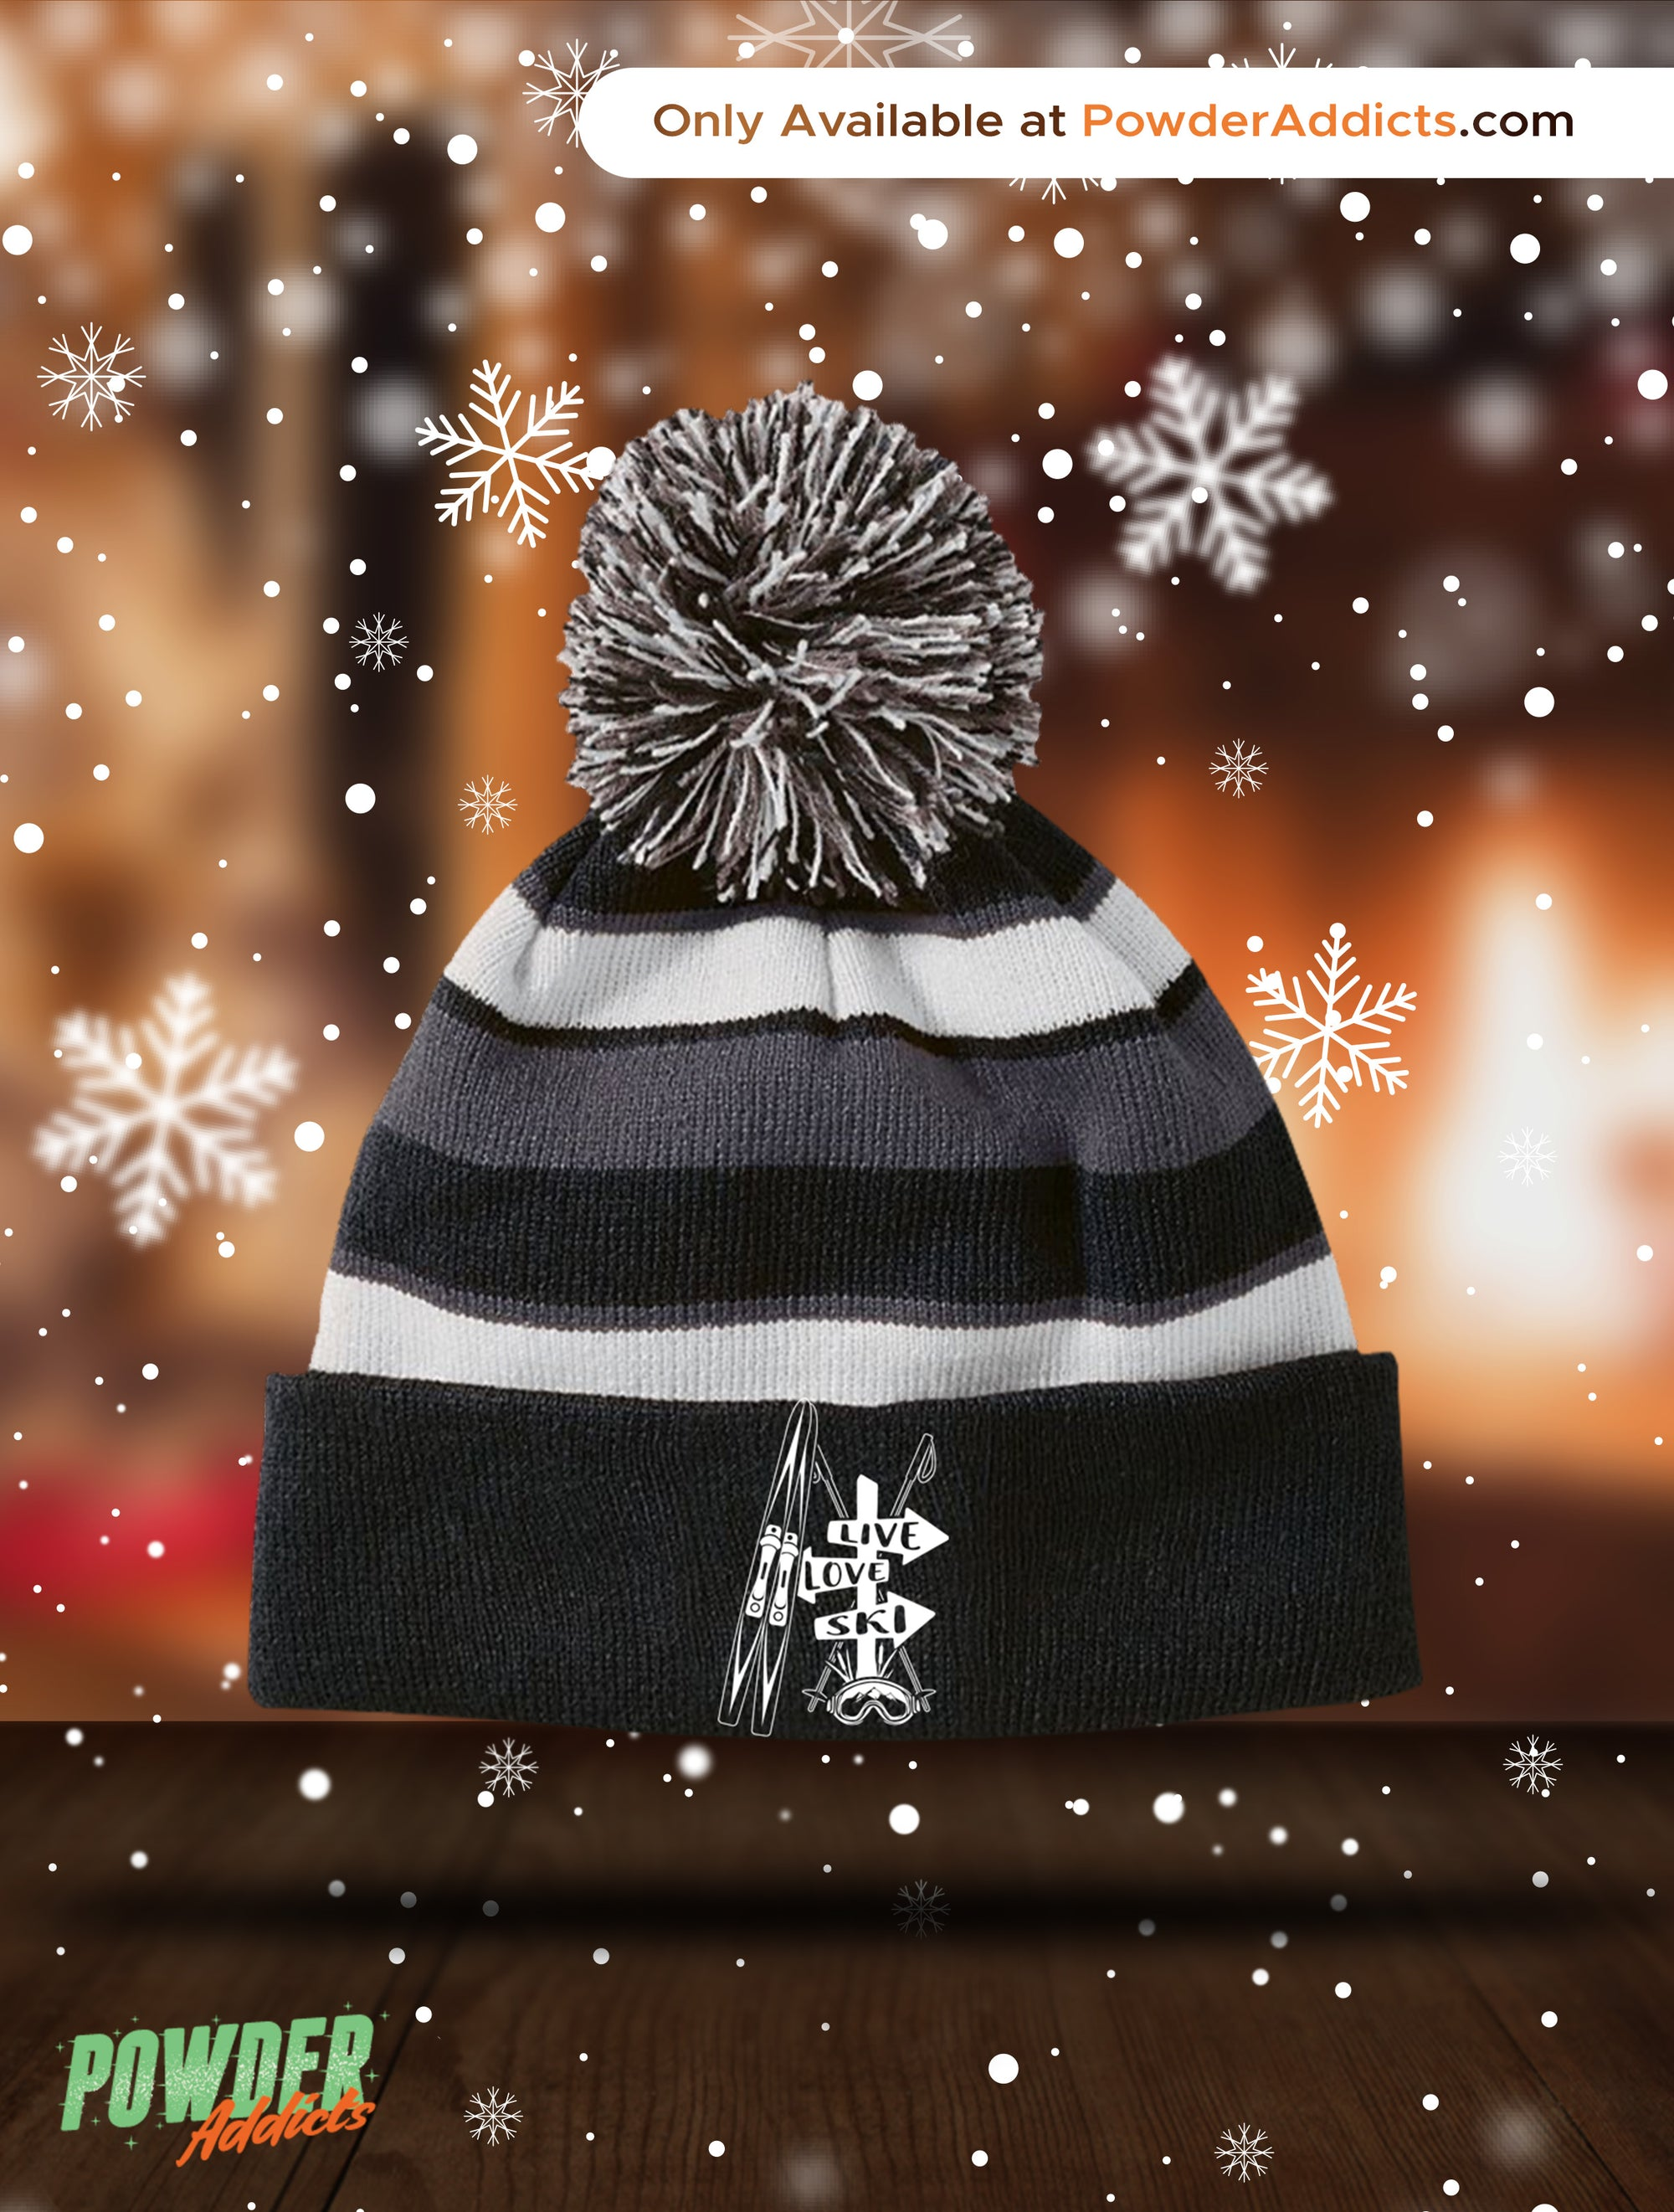 Live Love Ski Striped Beanie - Powderaddicts